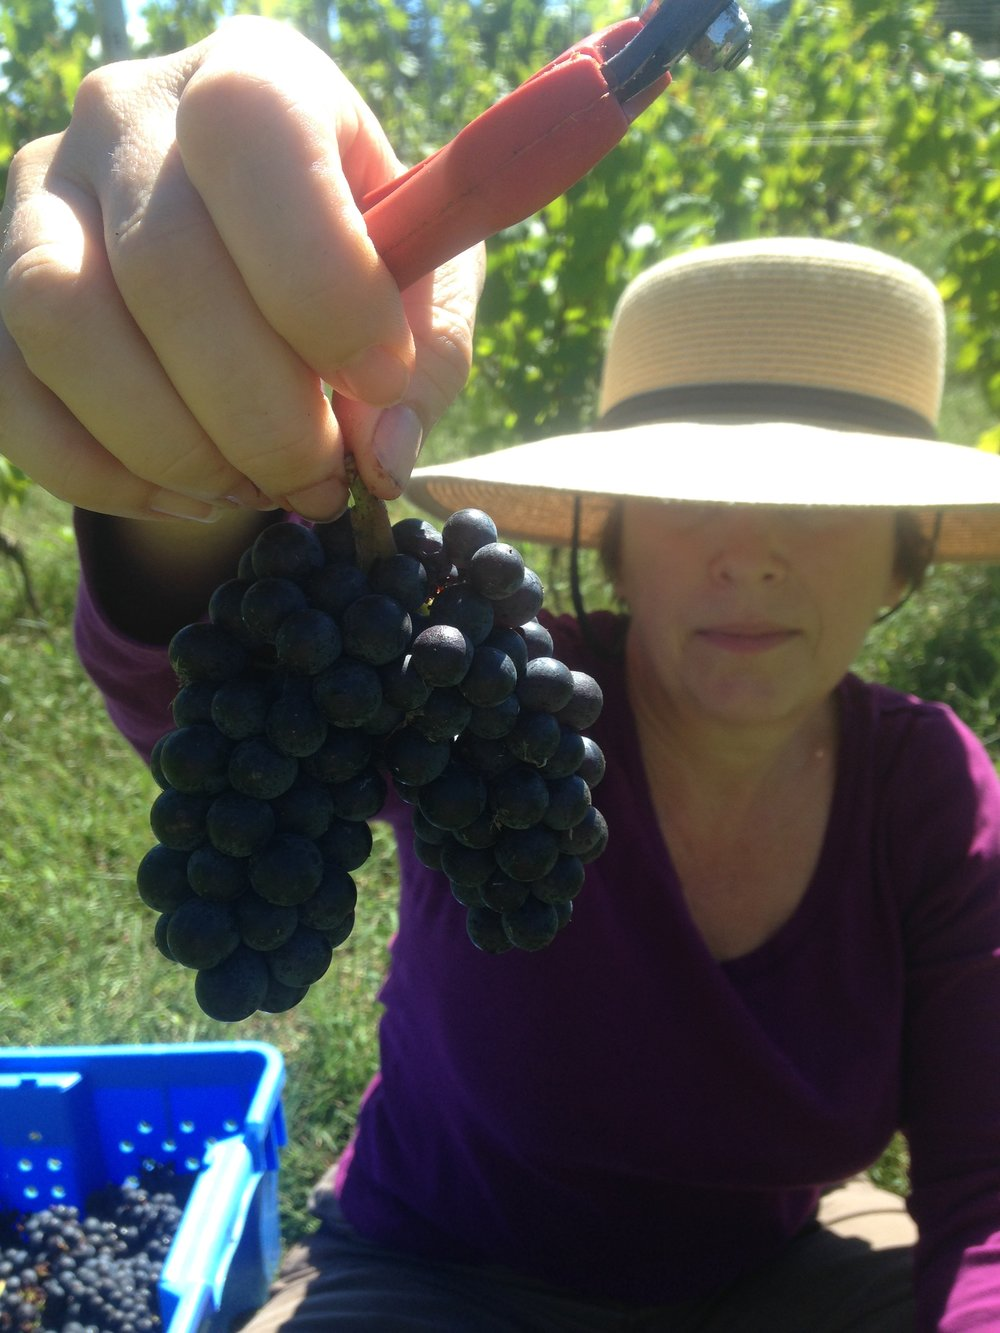 Daun holds a bunch of 2016's dark-colored, thick-skinned Pinot Noir